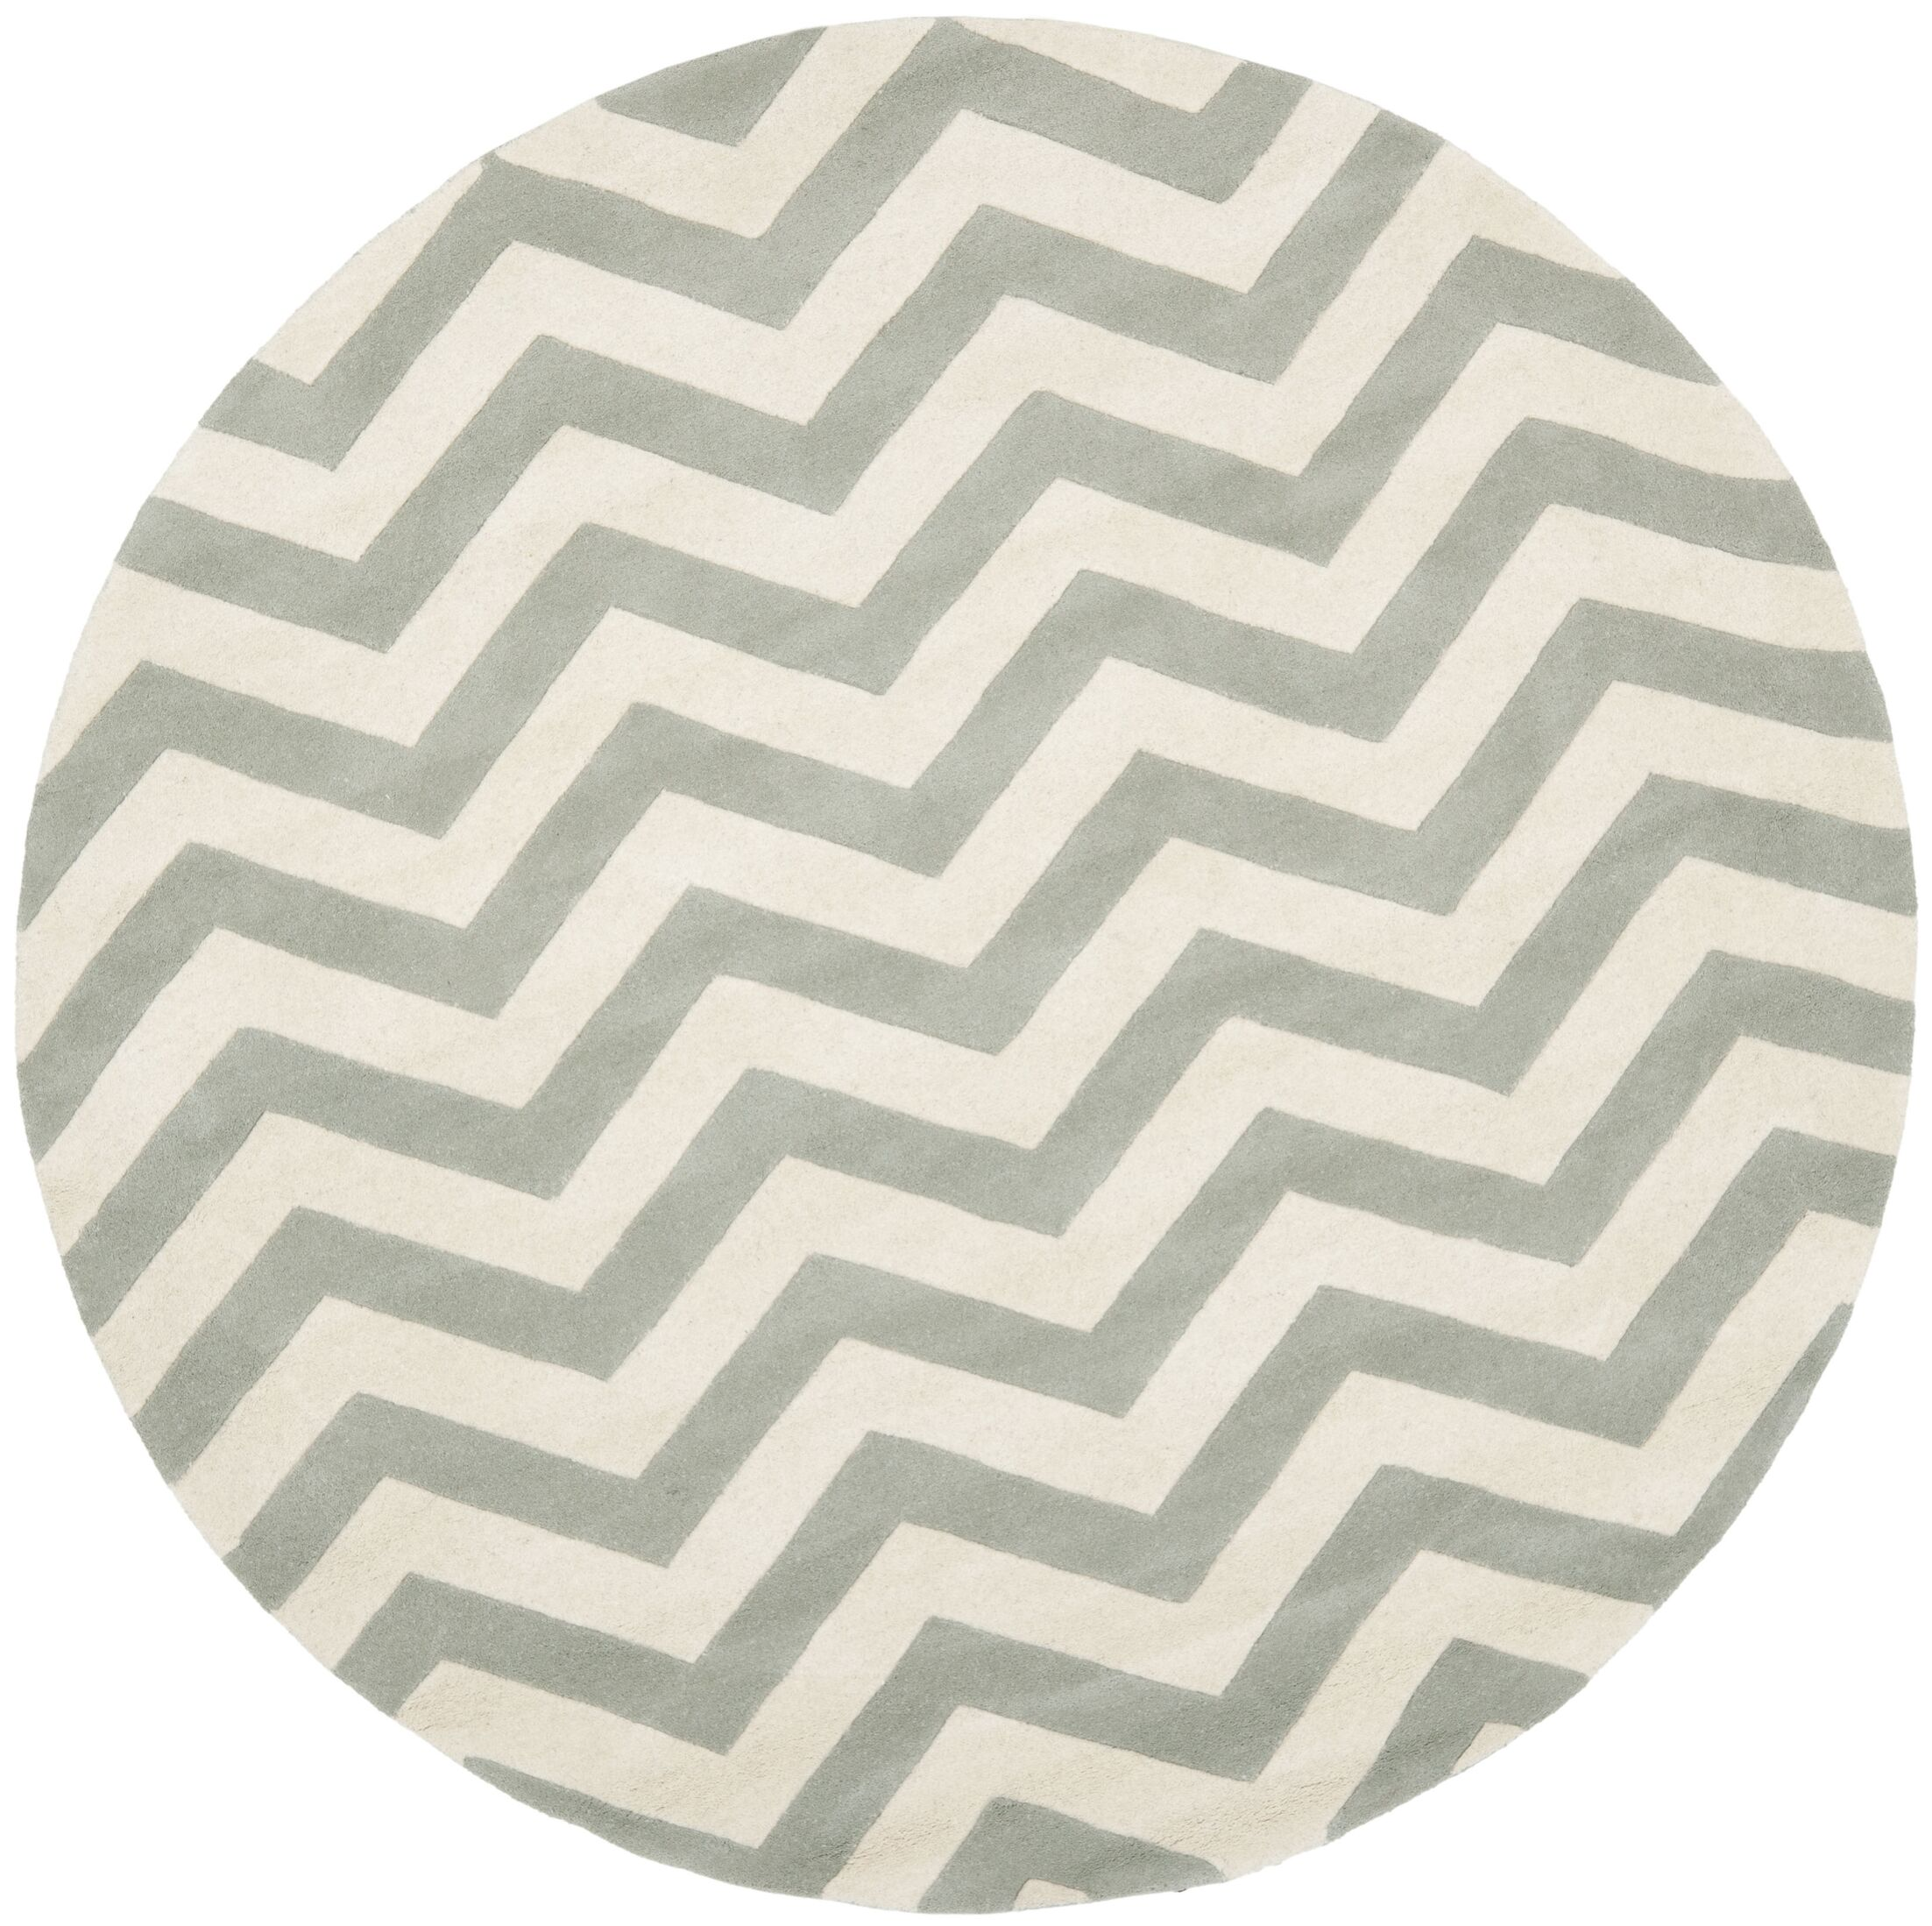 Wilkin Chevron Hand-Tufted Wool Gray/Ivory Area Rug Rug Size: Round 9'